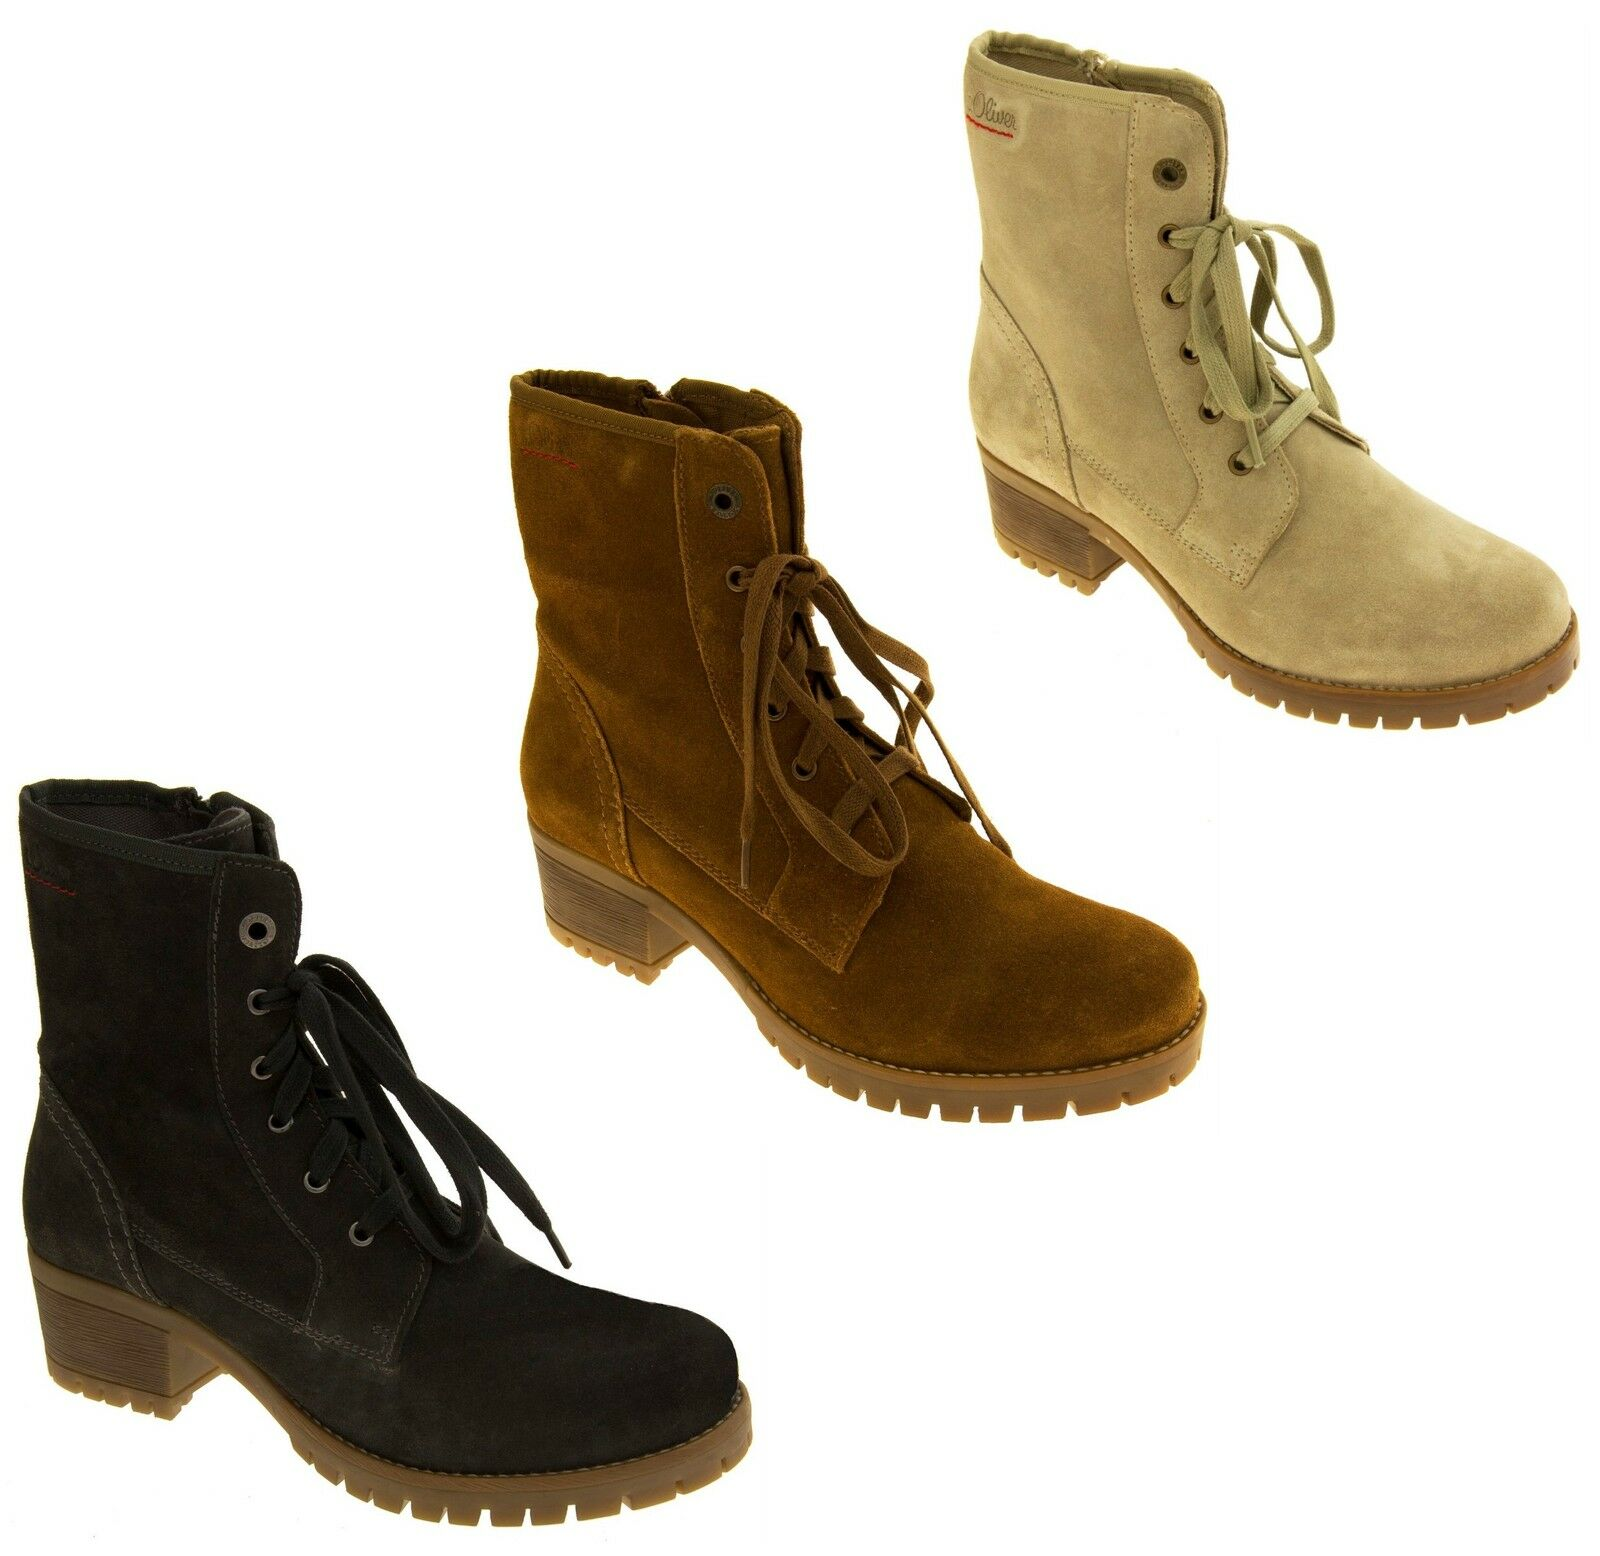 Womens Suede Leather s.Oliver Ladies 4 Military Zip Ankle Boots Sz Size 4 Ladies 5 6 7 8 4712e1